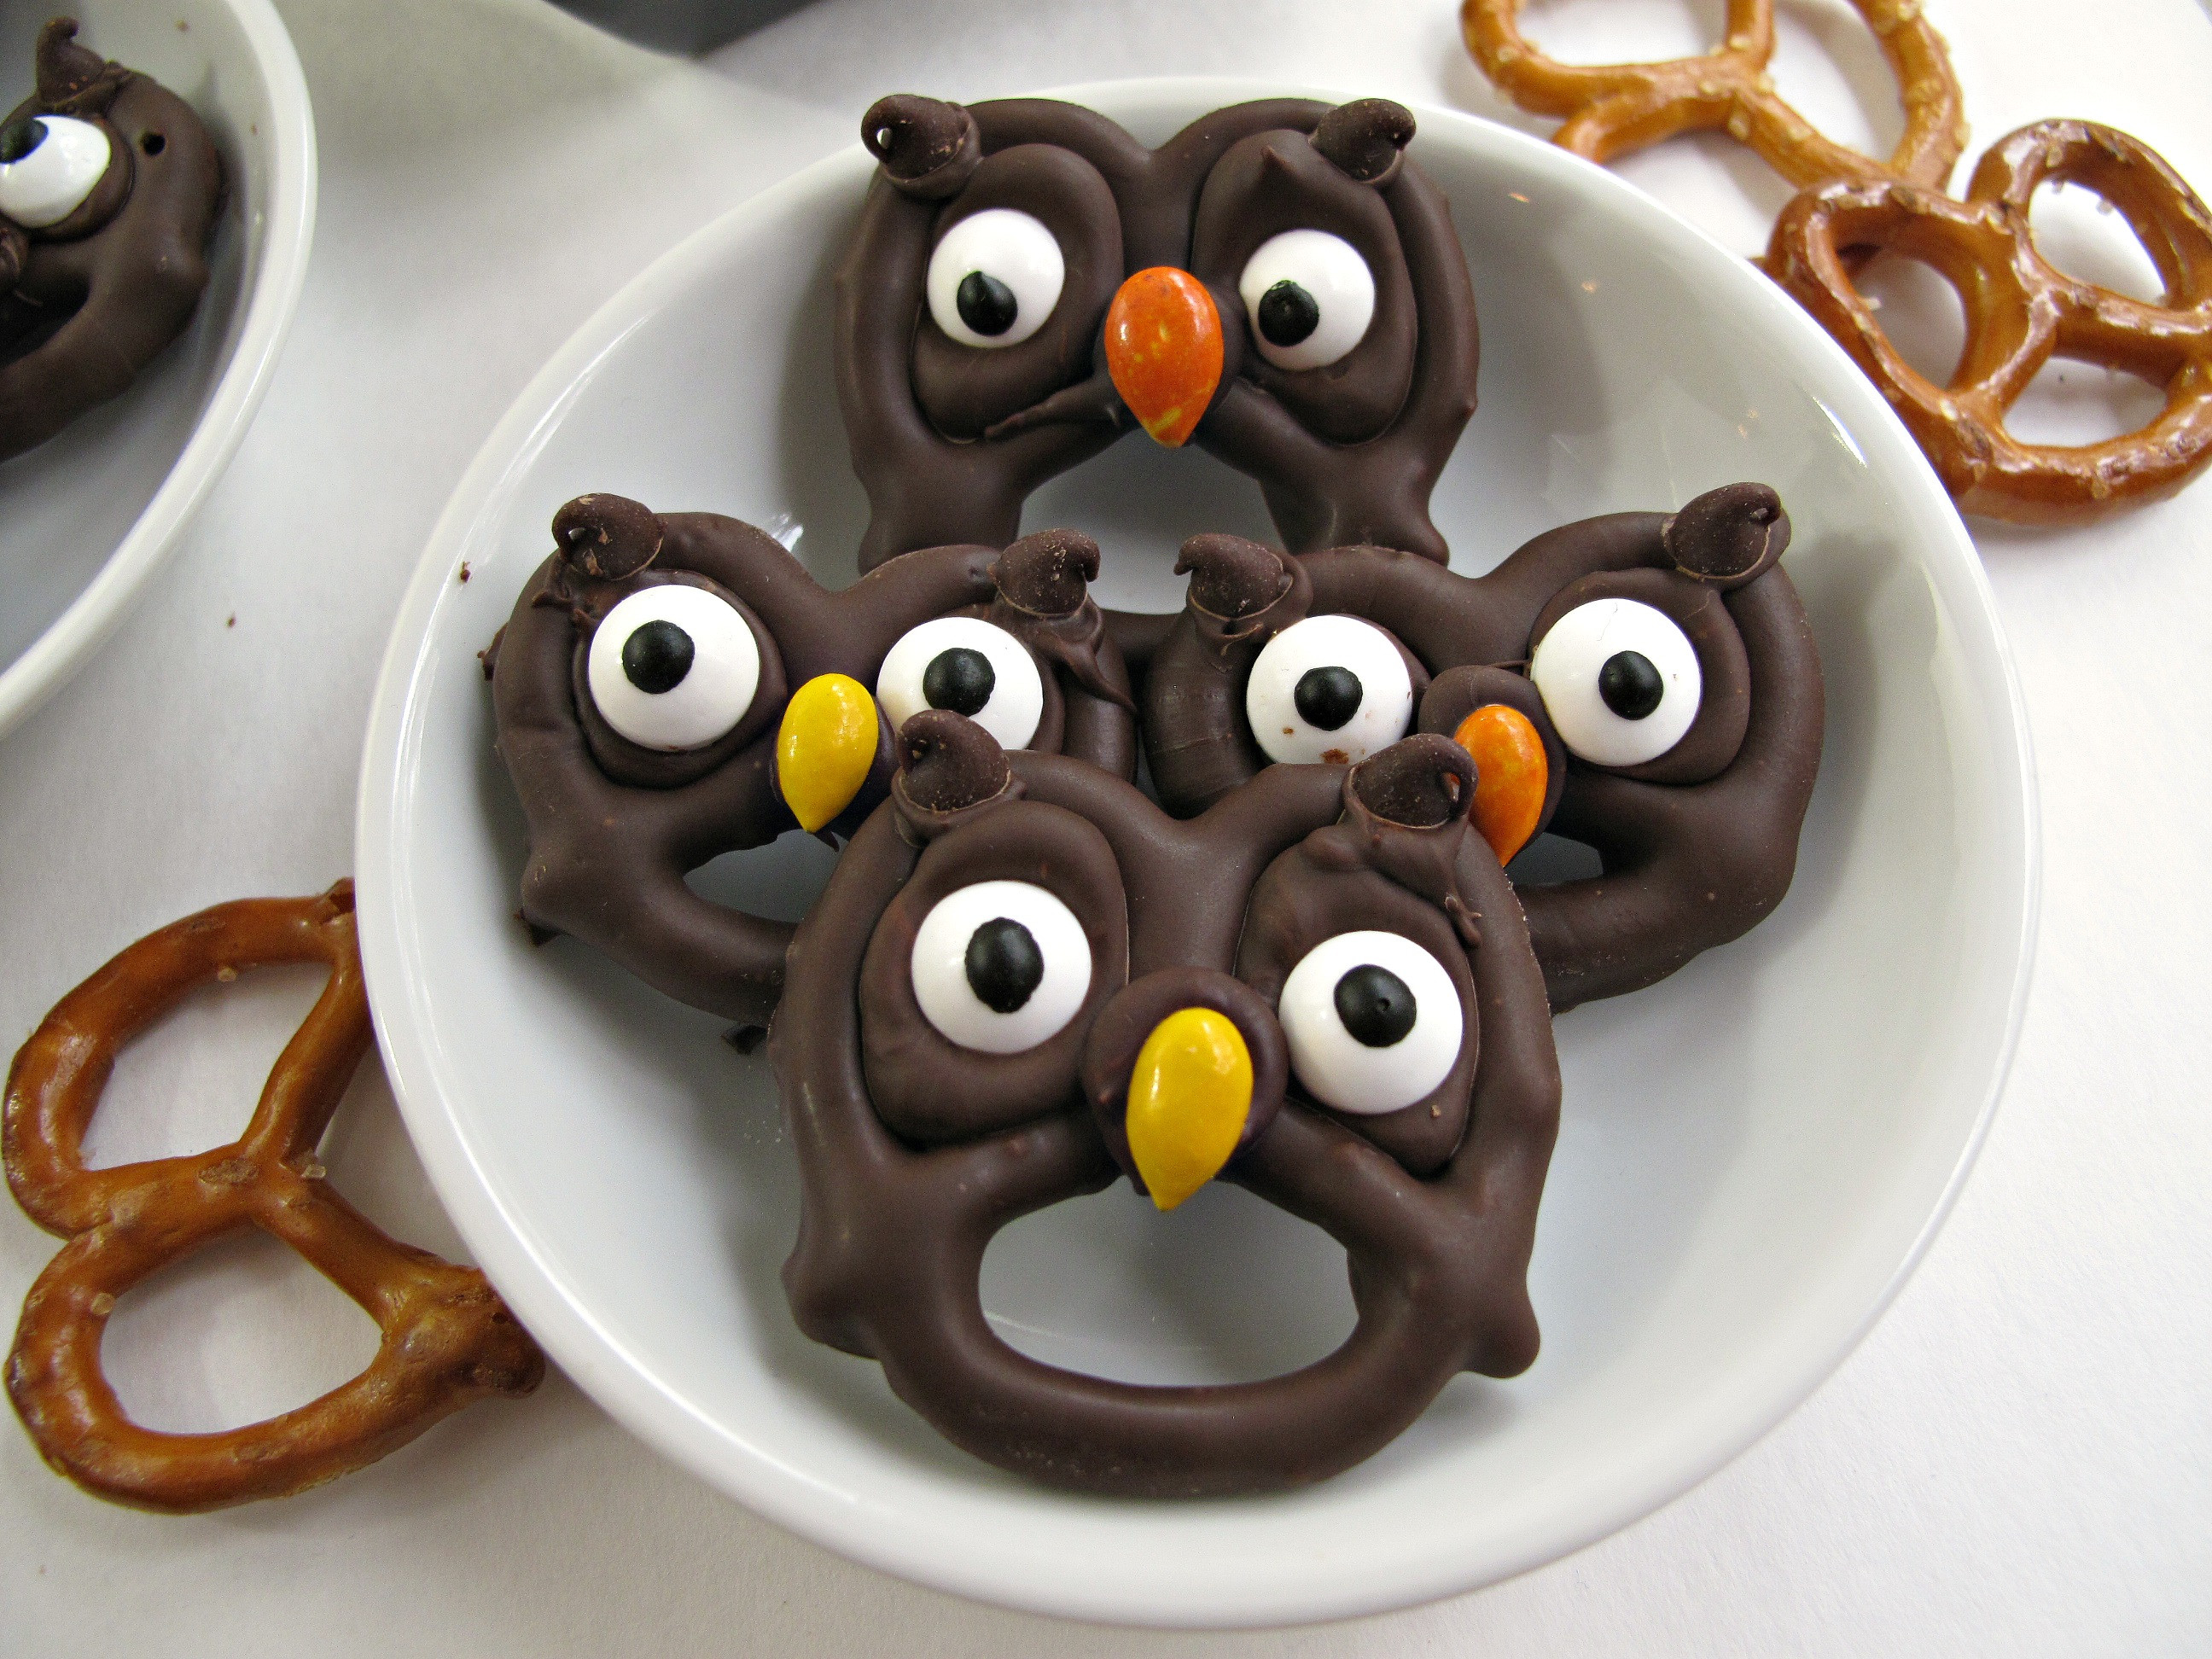 Chocolate Dipped Pretzels For Halloween  Halloween Pretzels easy fast and fun The Monday Box